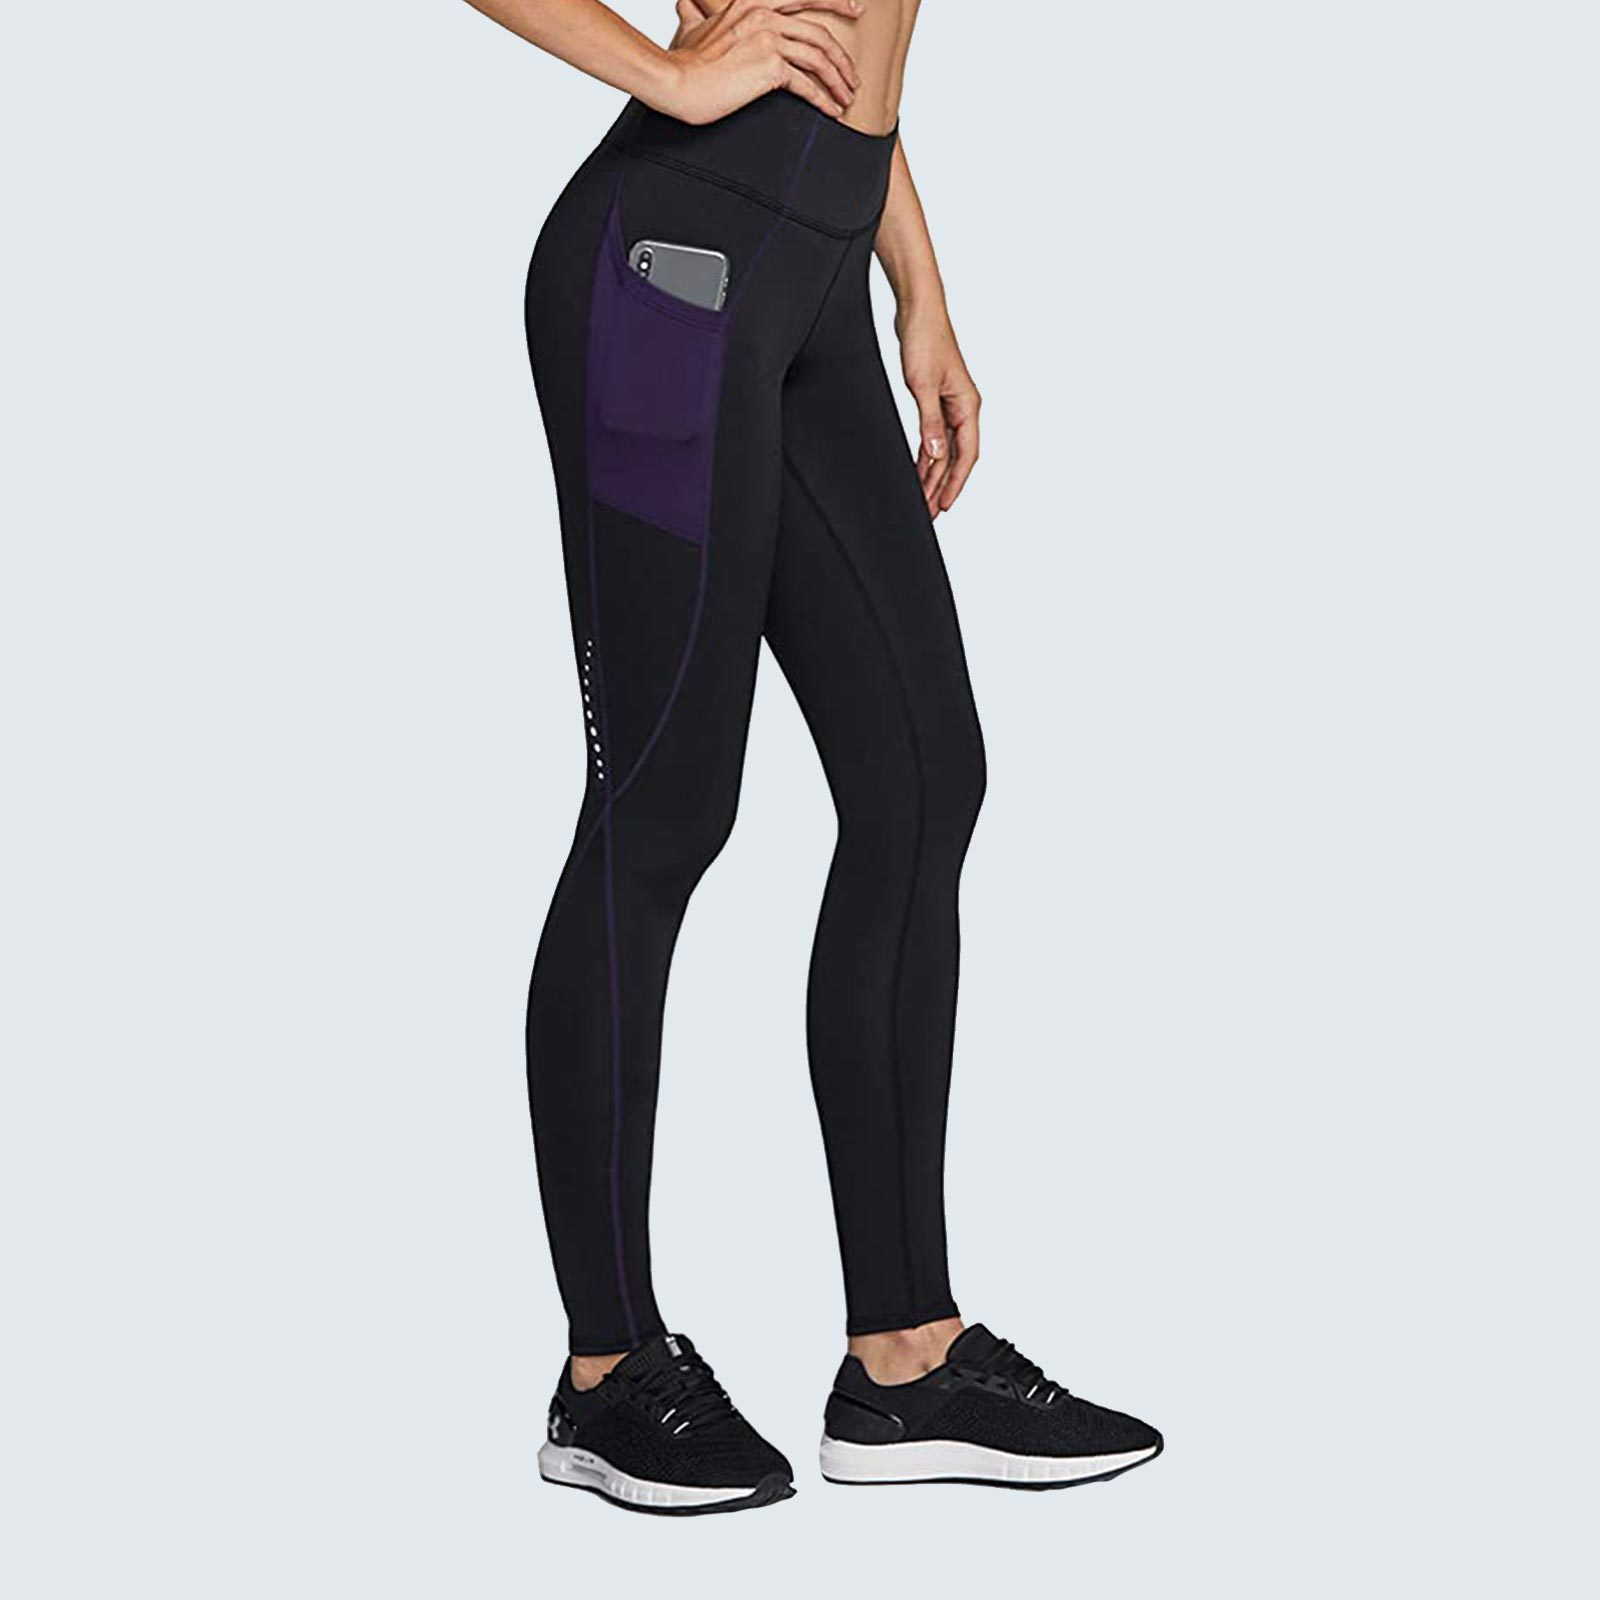 Best leggings for cold weather: TSLA Thermal Running Tights